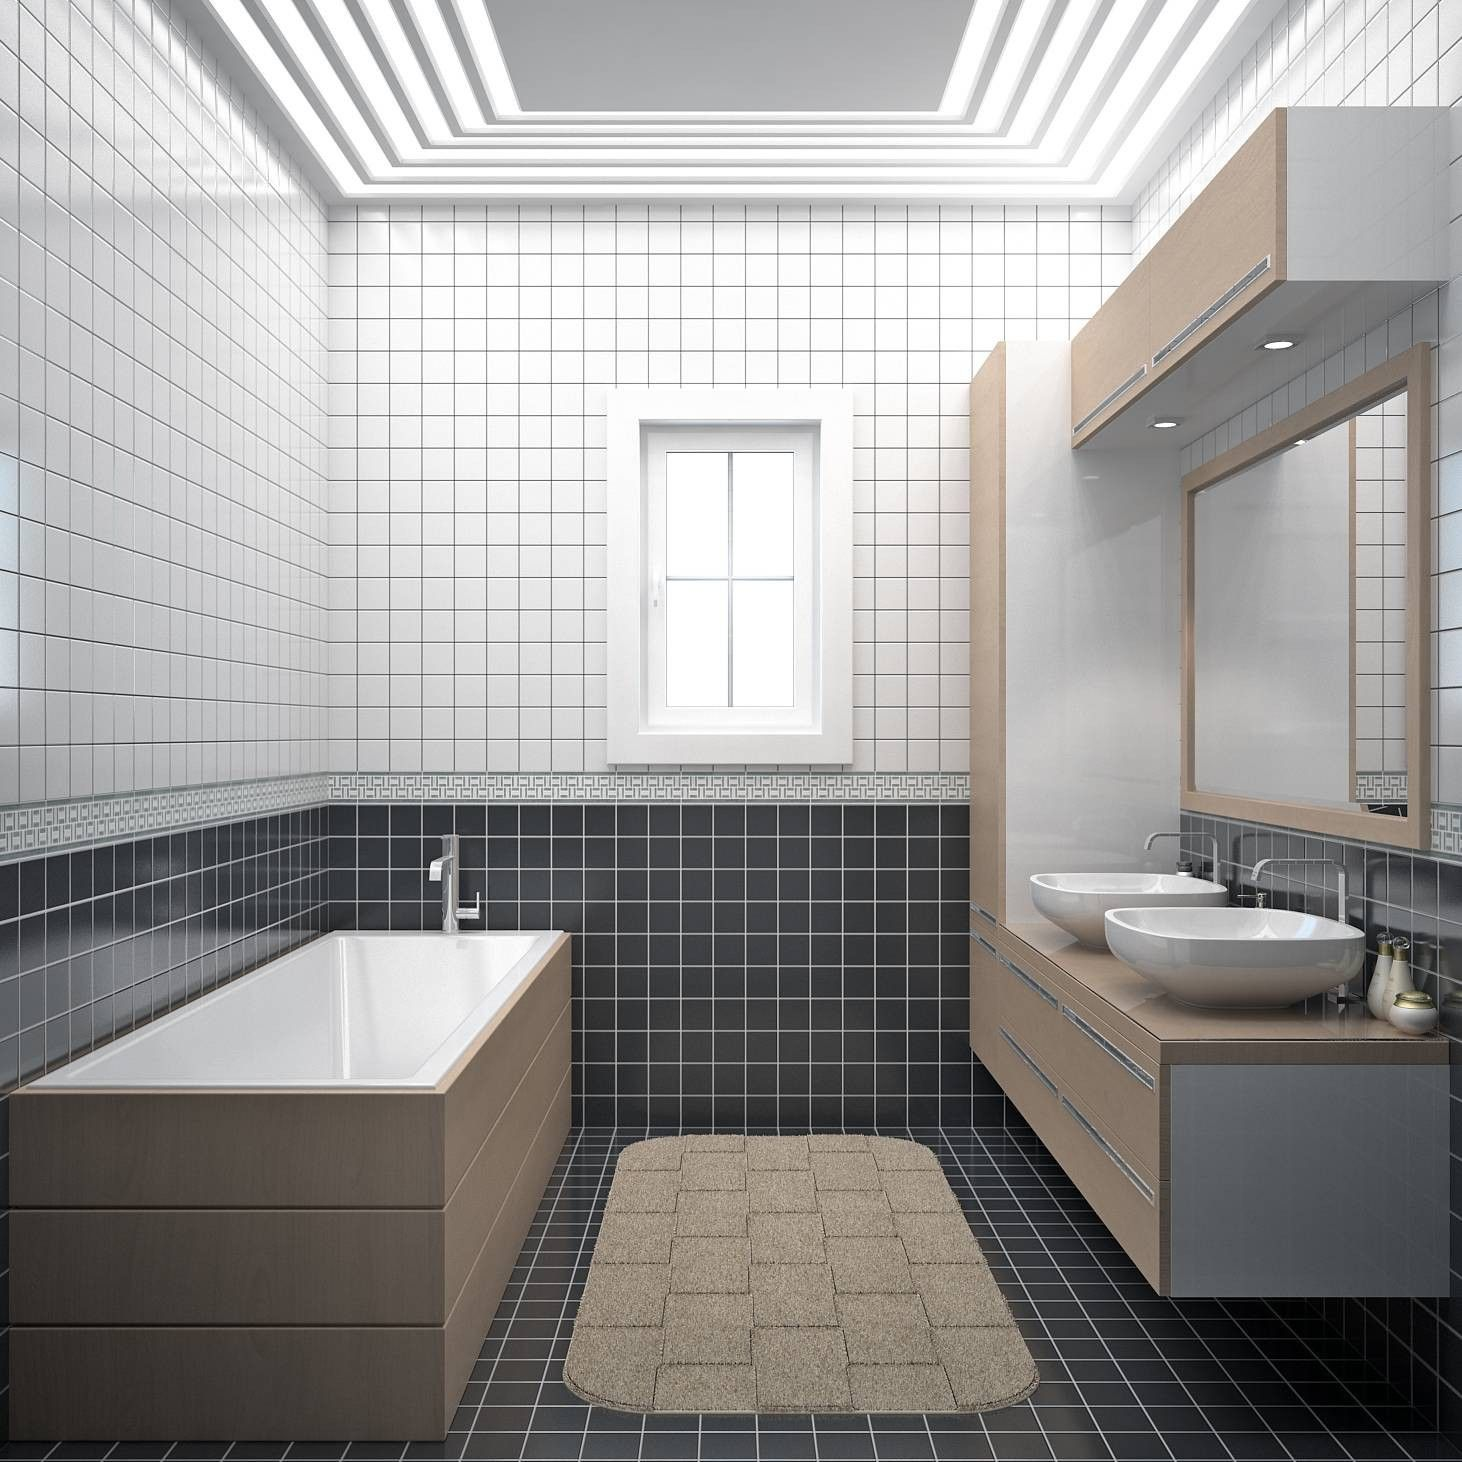 New Amenagement Salle De Bain 10m2 Bathroom Inspiration Bathrooms Remodel Bathroom